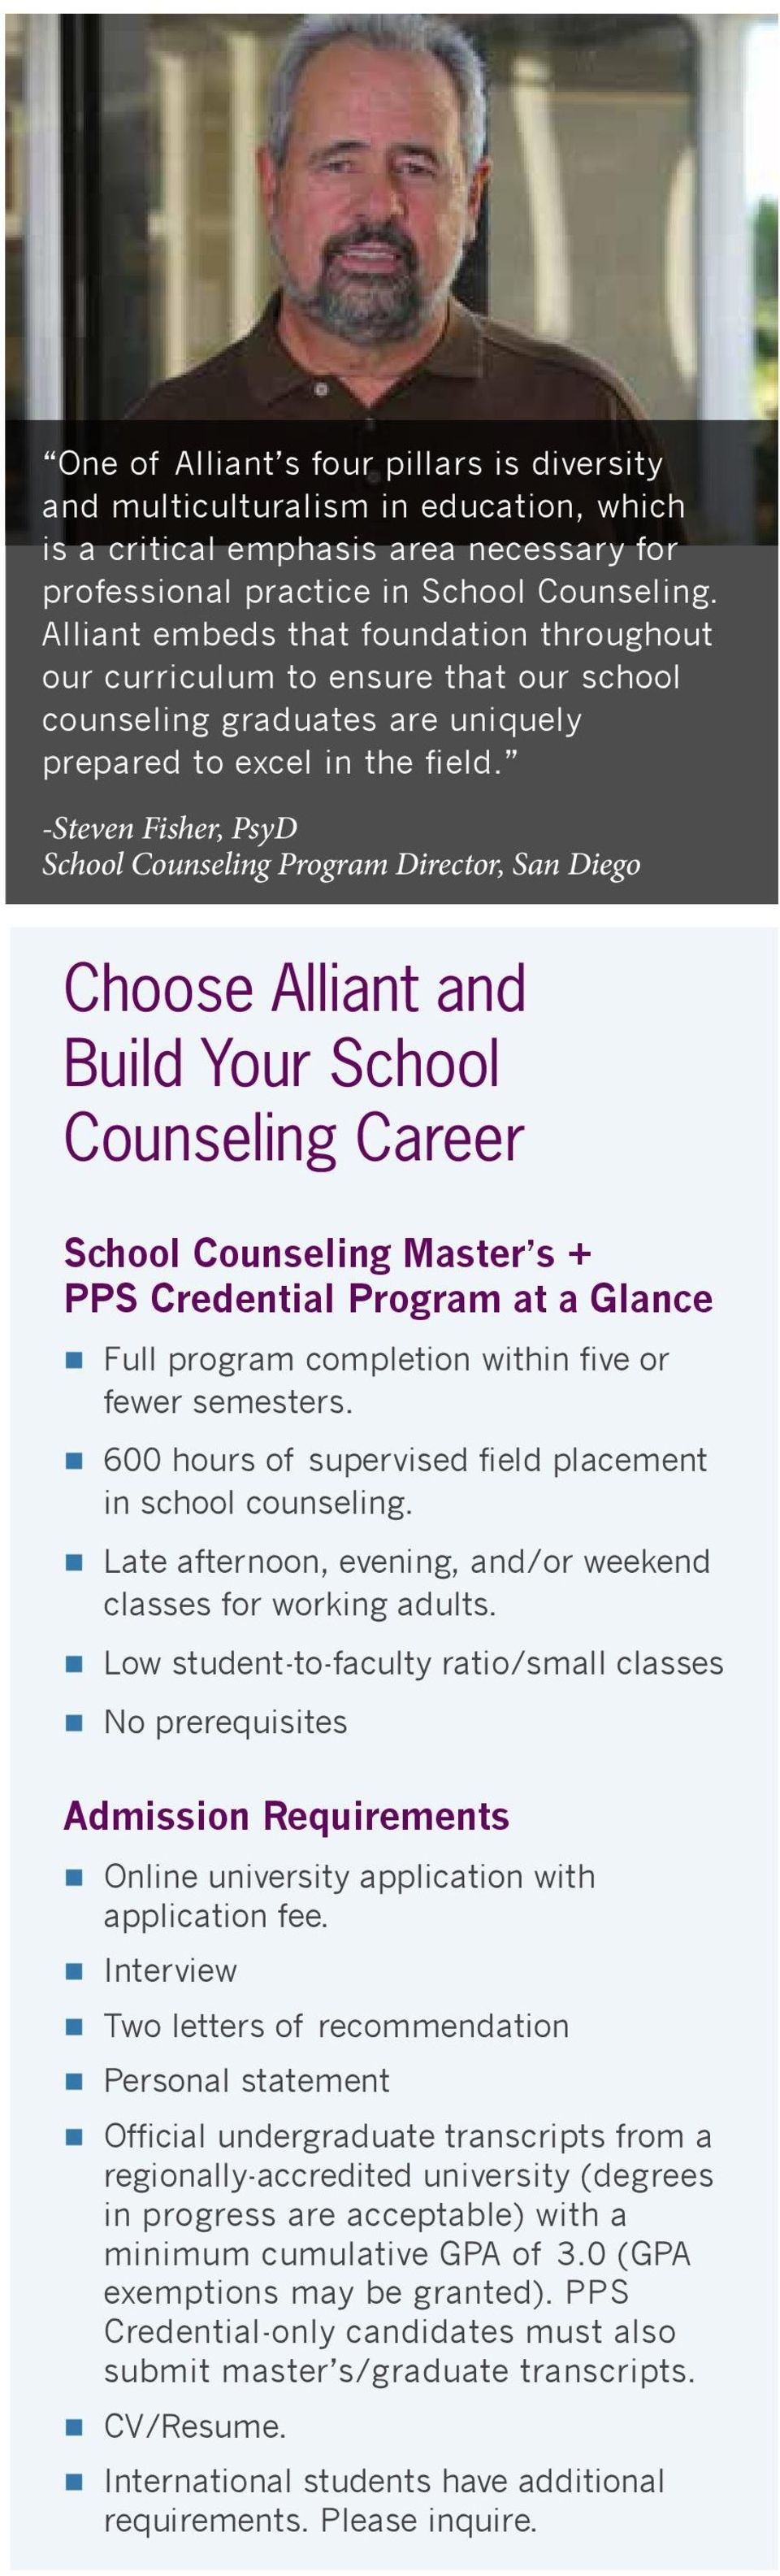 -Steven Fisher, PsyD School Counseling Program Director, San Diego Choose Alliant and Build Your School Counseling Career School Counseling Master s + PPS Credential Program at a Glance Full program